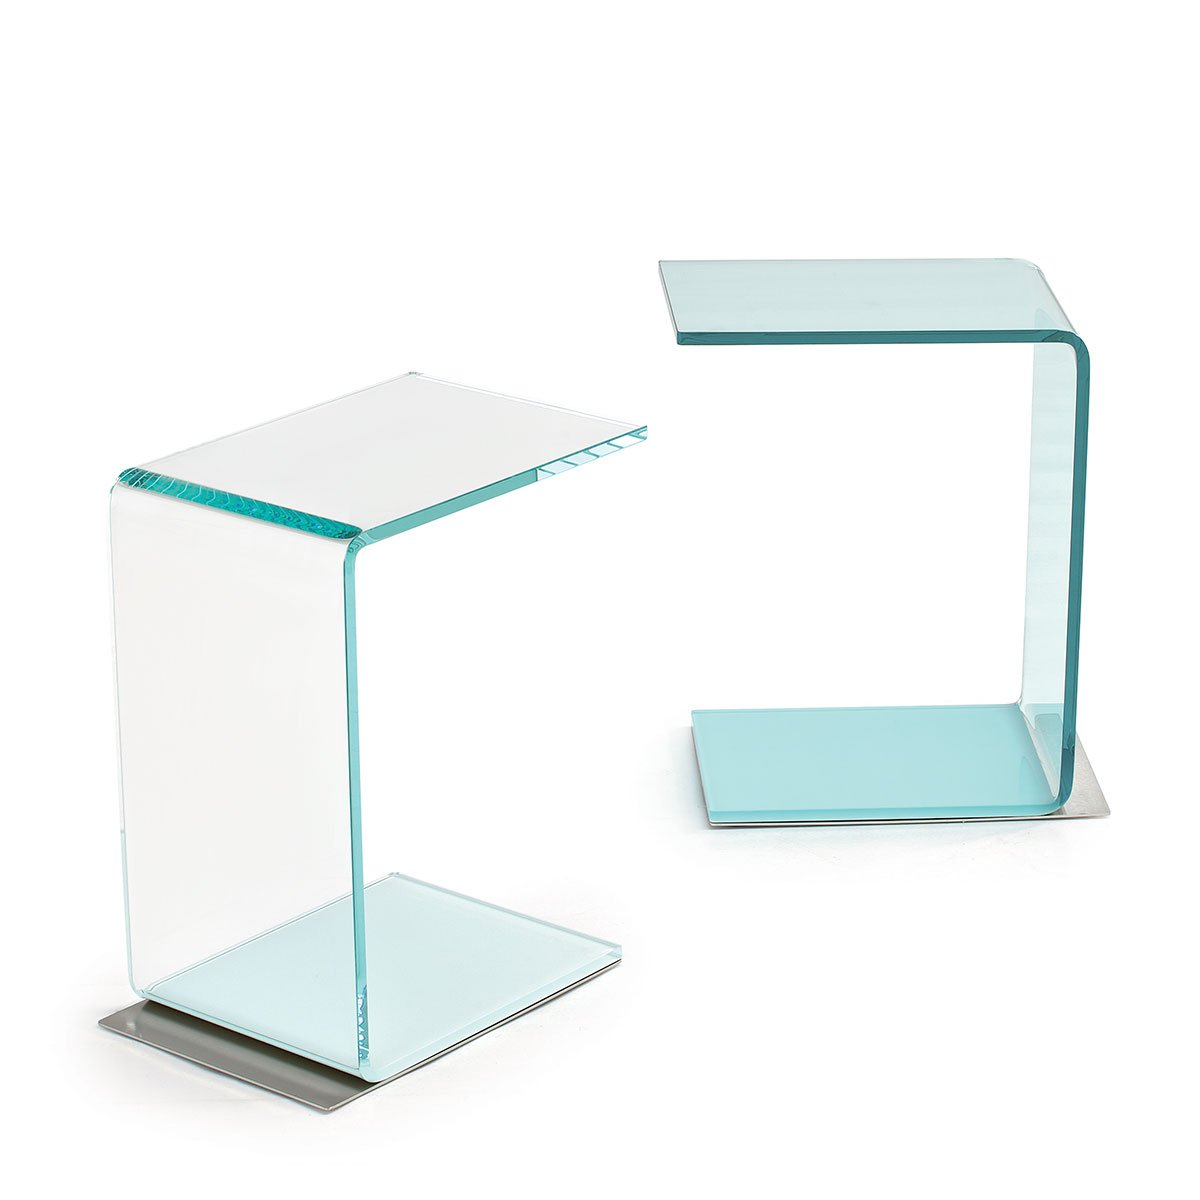 Swan Curved Glass Table Coloured Base Klarity Glass  : Swan Curved Glass Side Table Coloured base by Sovet Italia from glassfurniture.co.uk size 1200 x 1200 jpeg 16kB